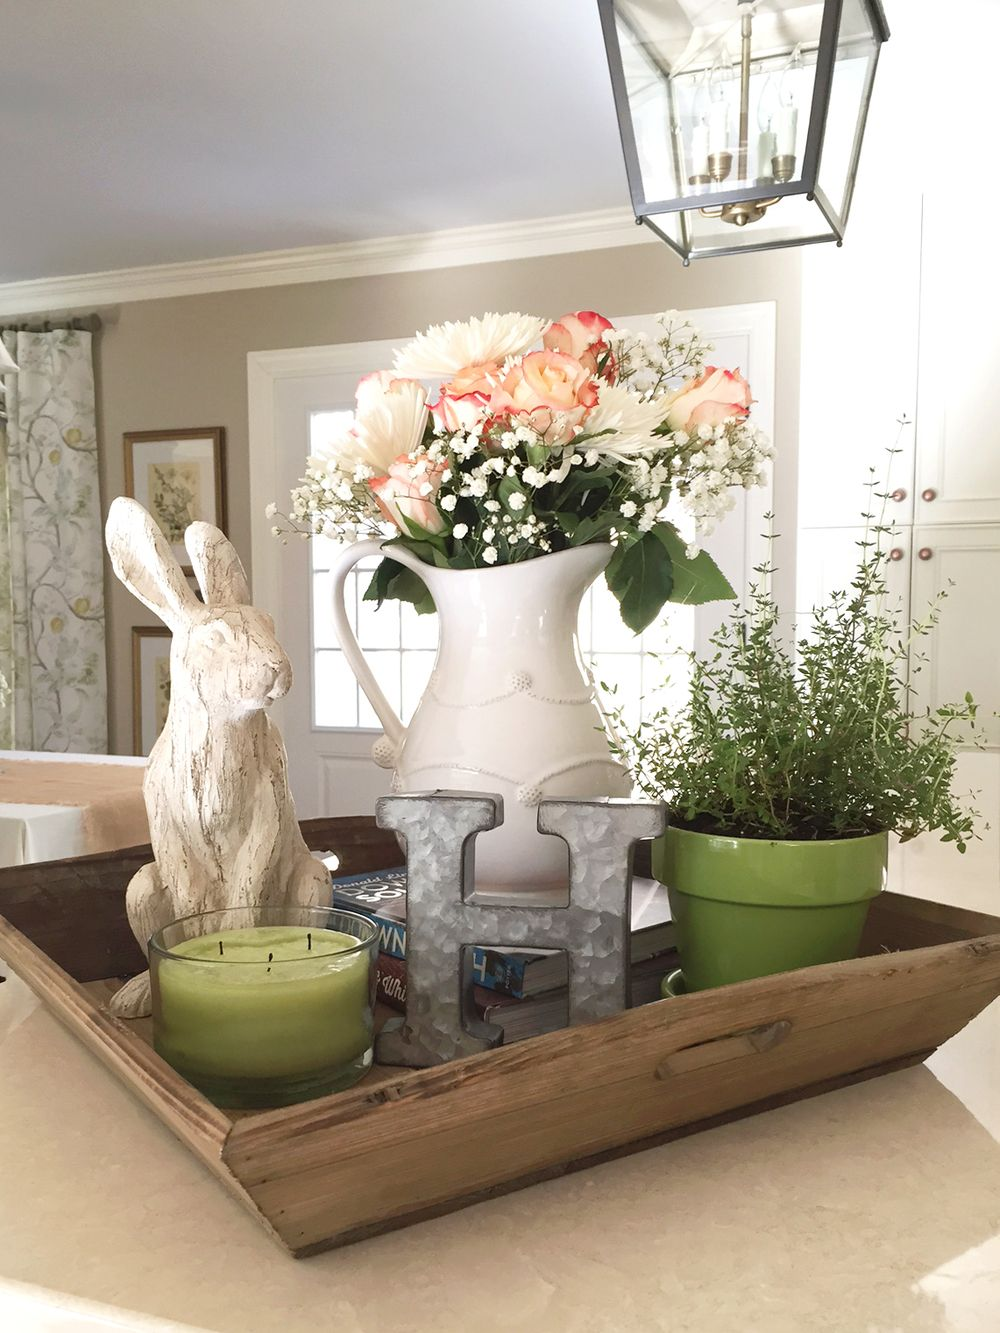 Spring U0026 Easter Decor For Kitchen Island Using Reclaimed Wooden Tray  #bhdhome #magnoliamarket